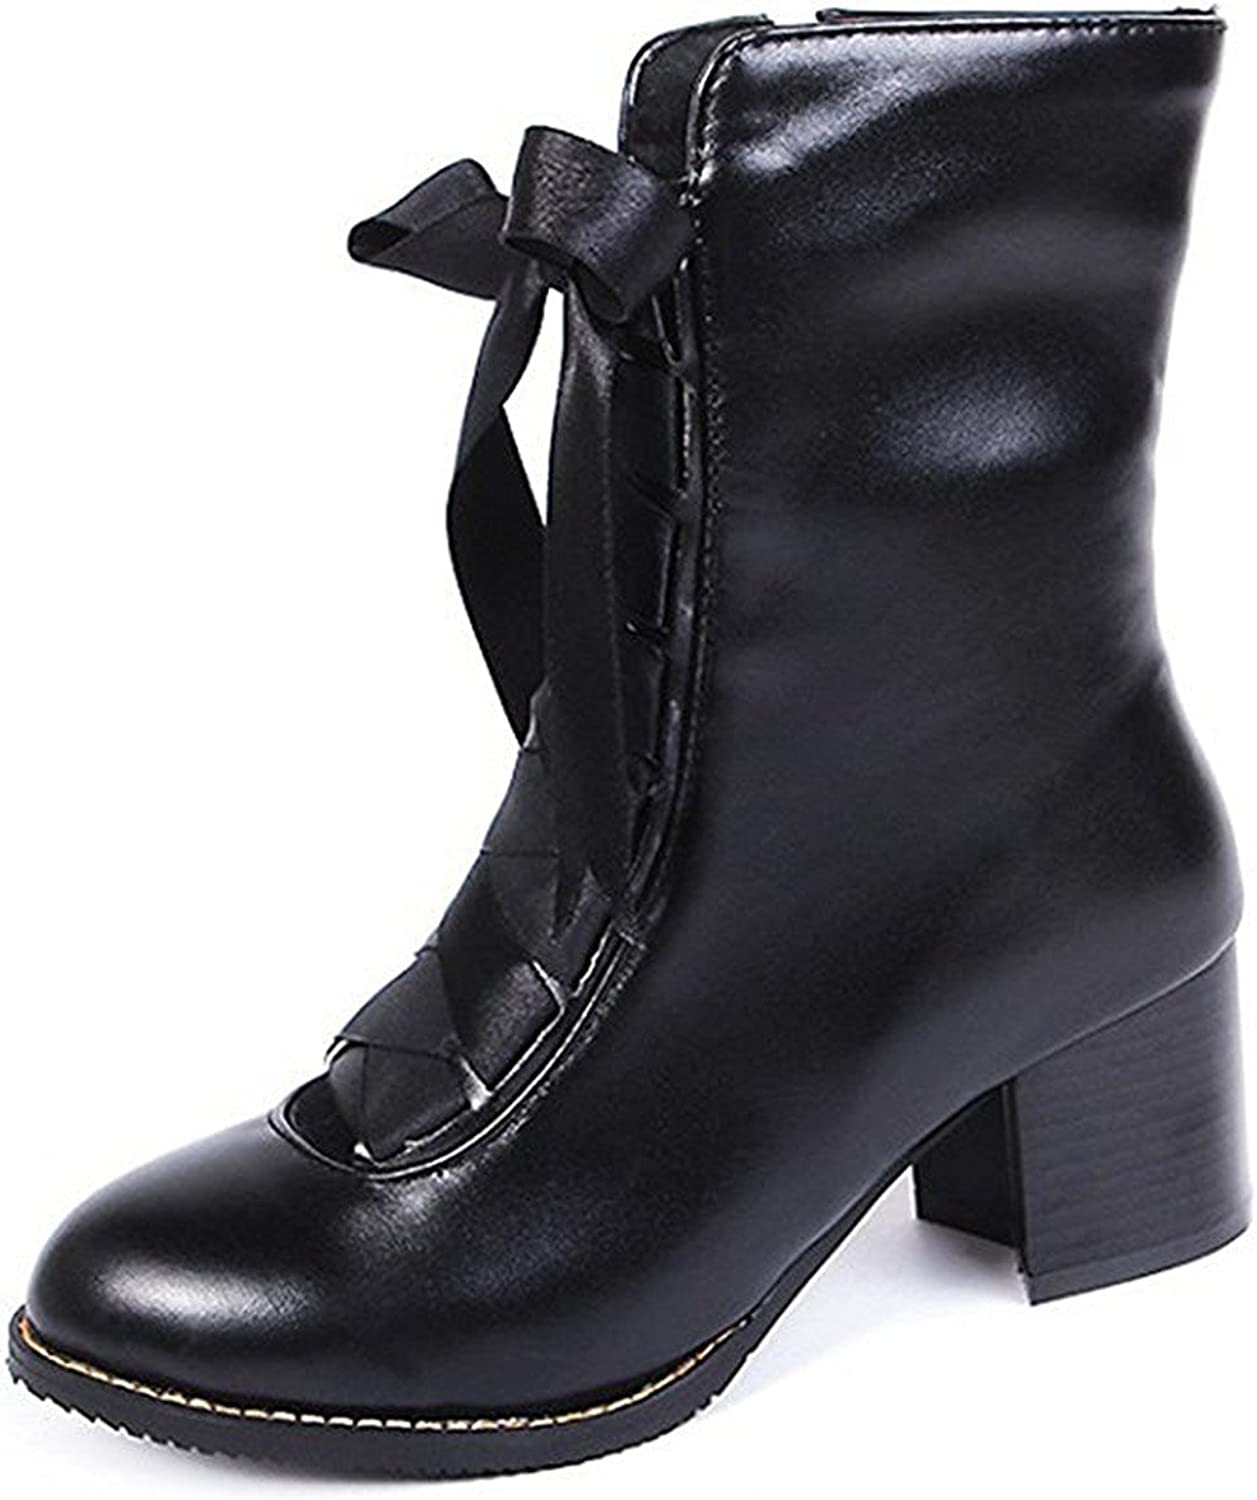 Colnsky Concise Mid-Calf Short Platform Heel CN Size 34-46 Plus Size Motorcycle Boots